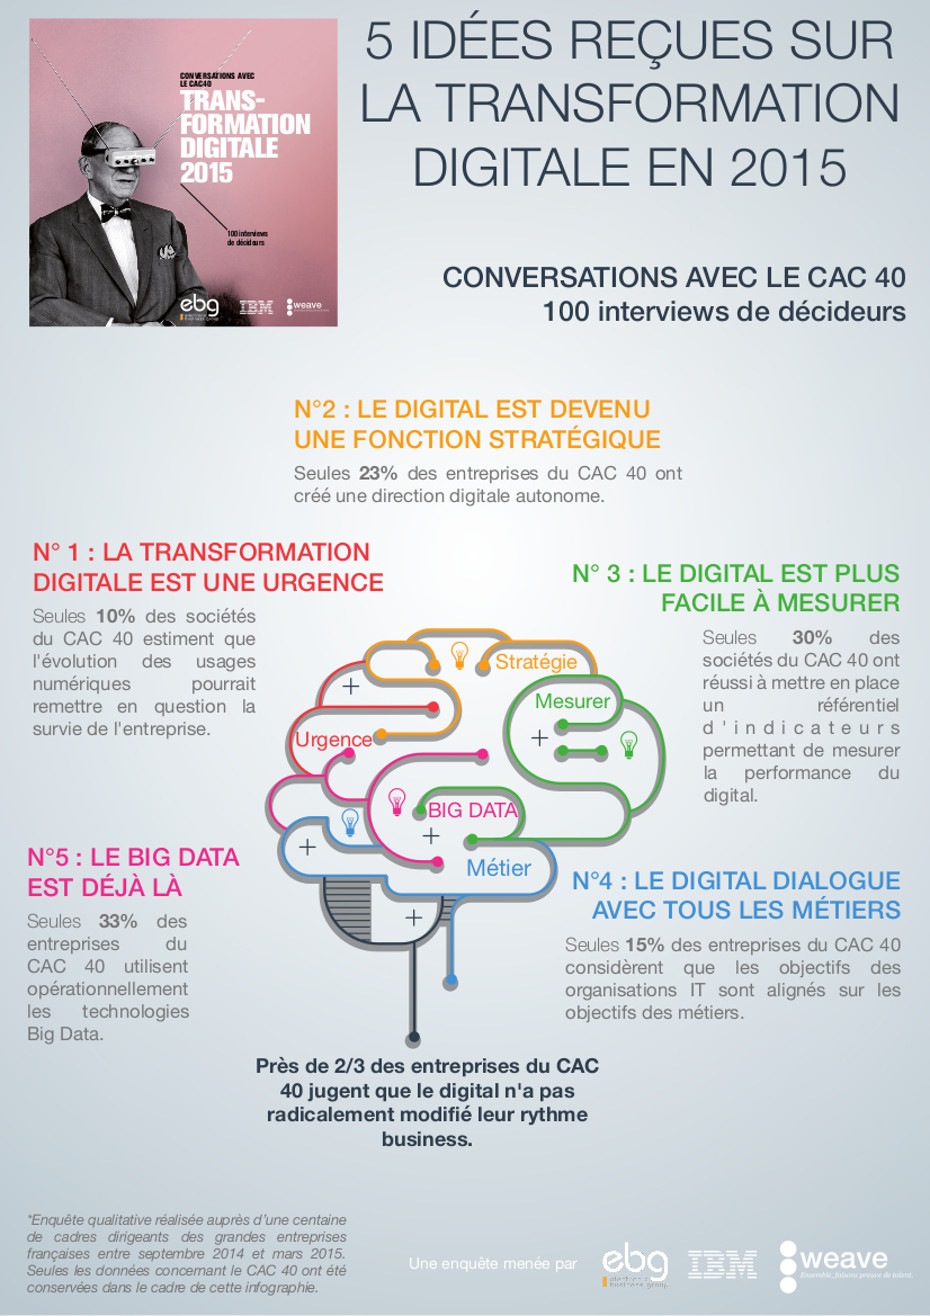 La transformation digitale : on en parle mais qui la fait ?